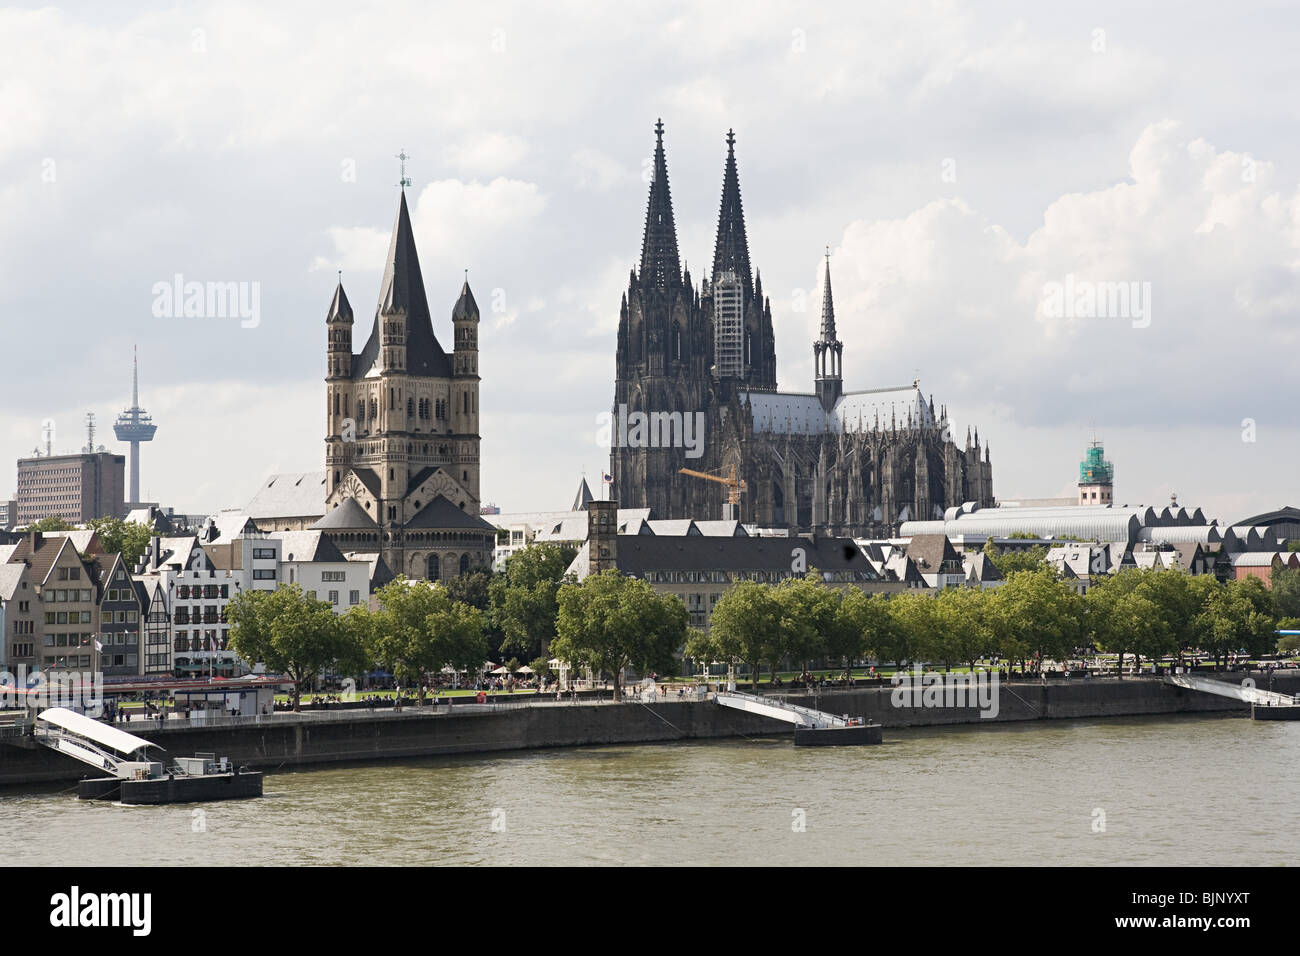 Great st martin church and cologne cathedral - Stock Image